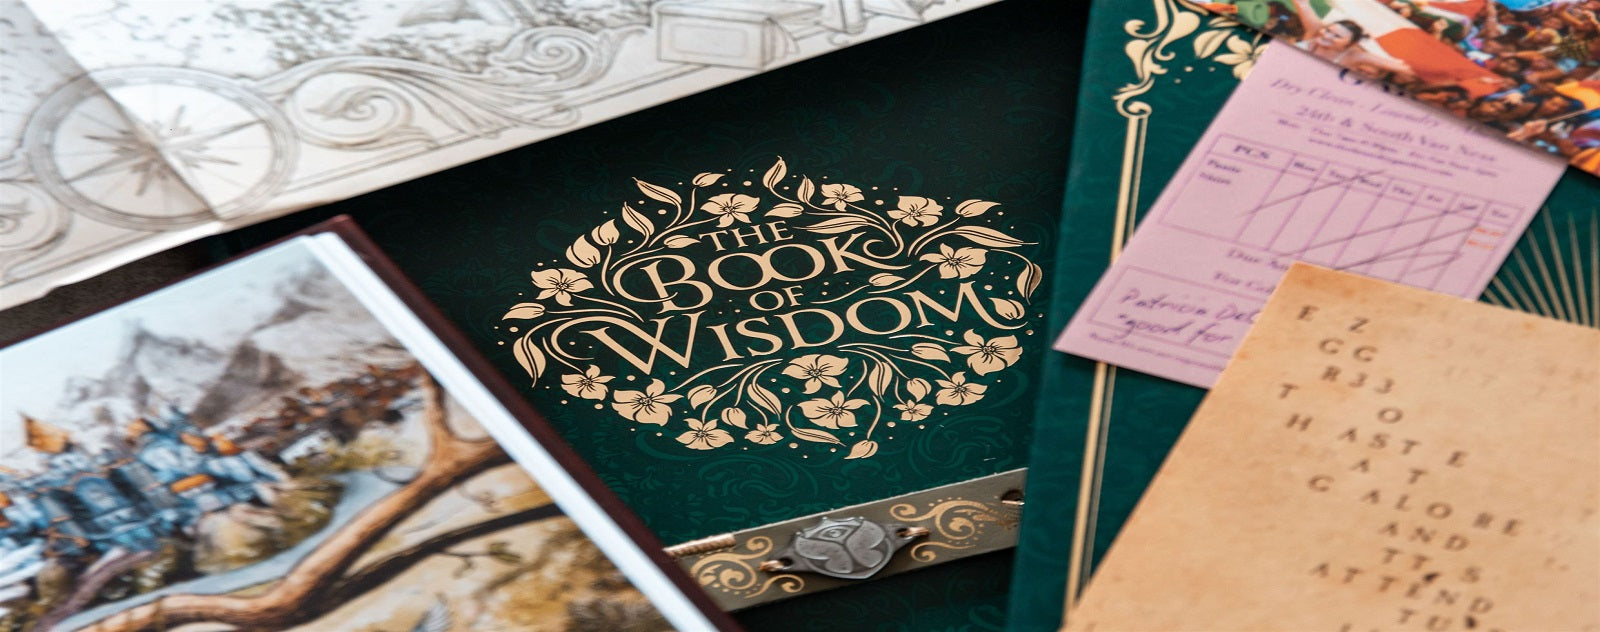 Book of wisdom Tomorrowland